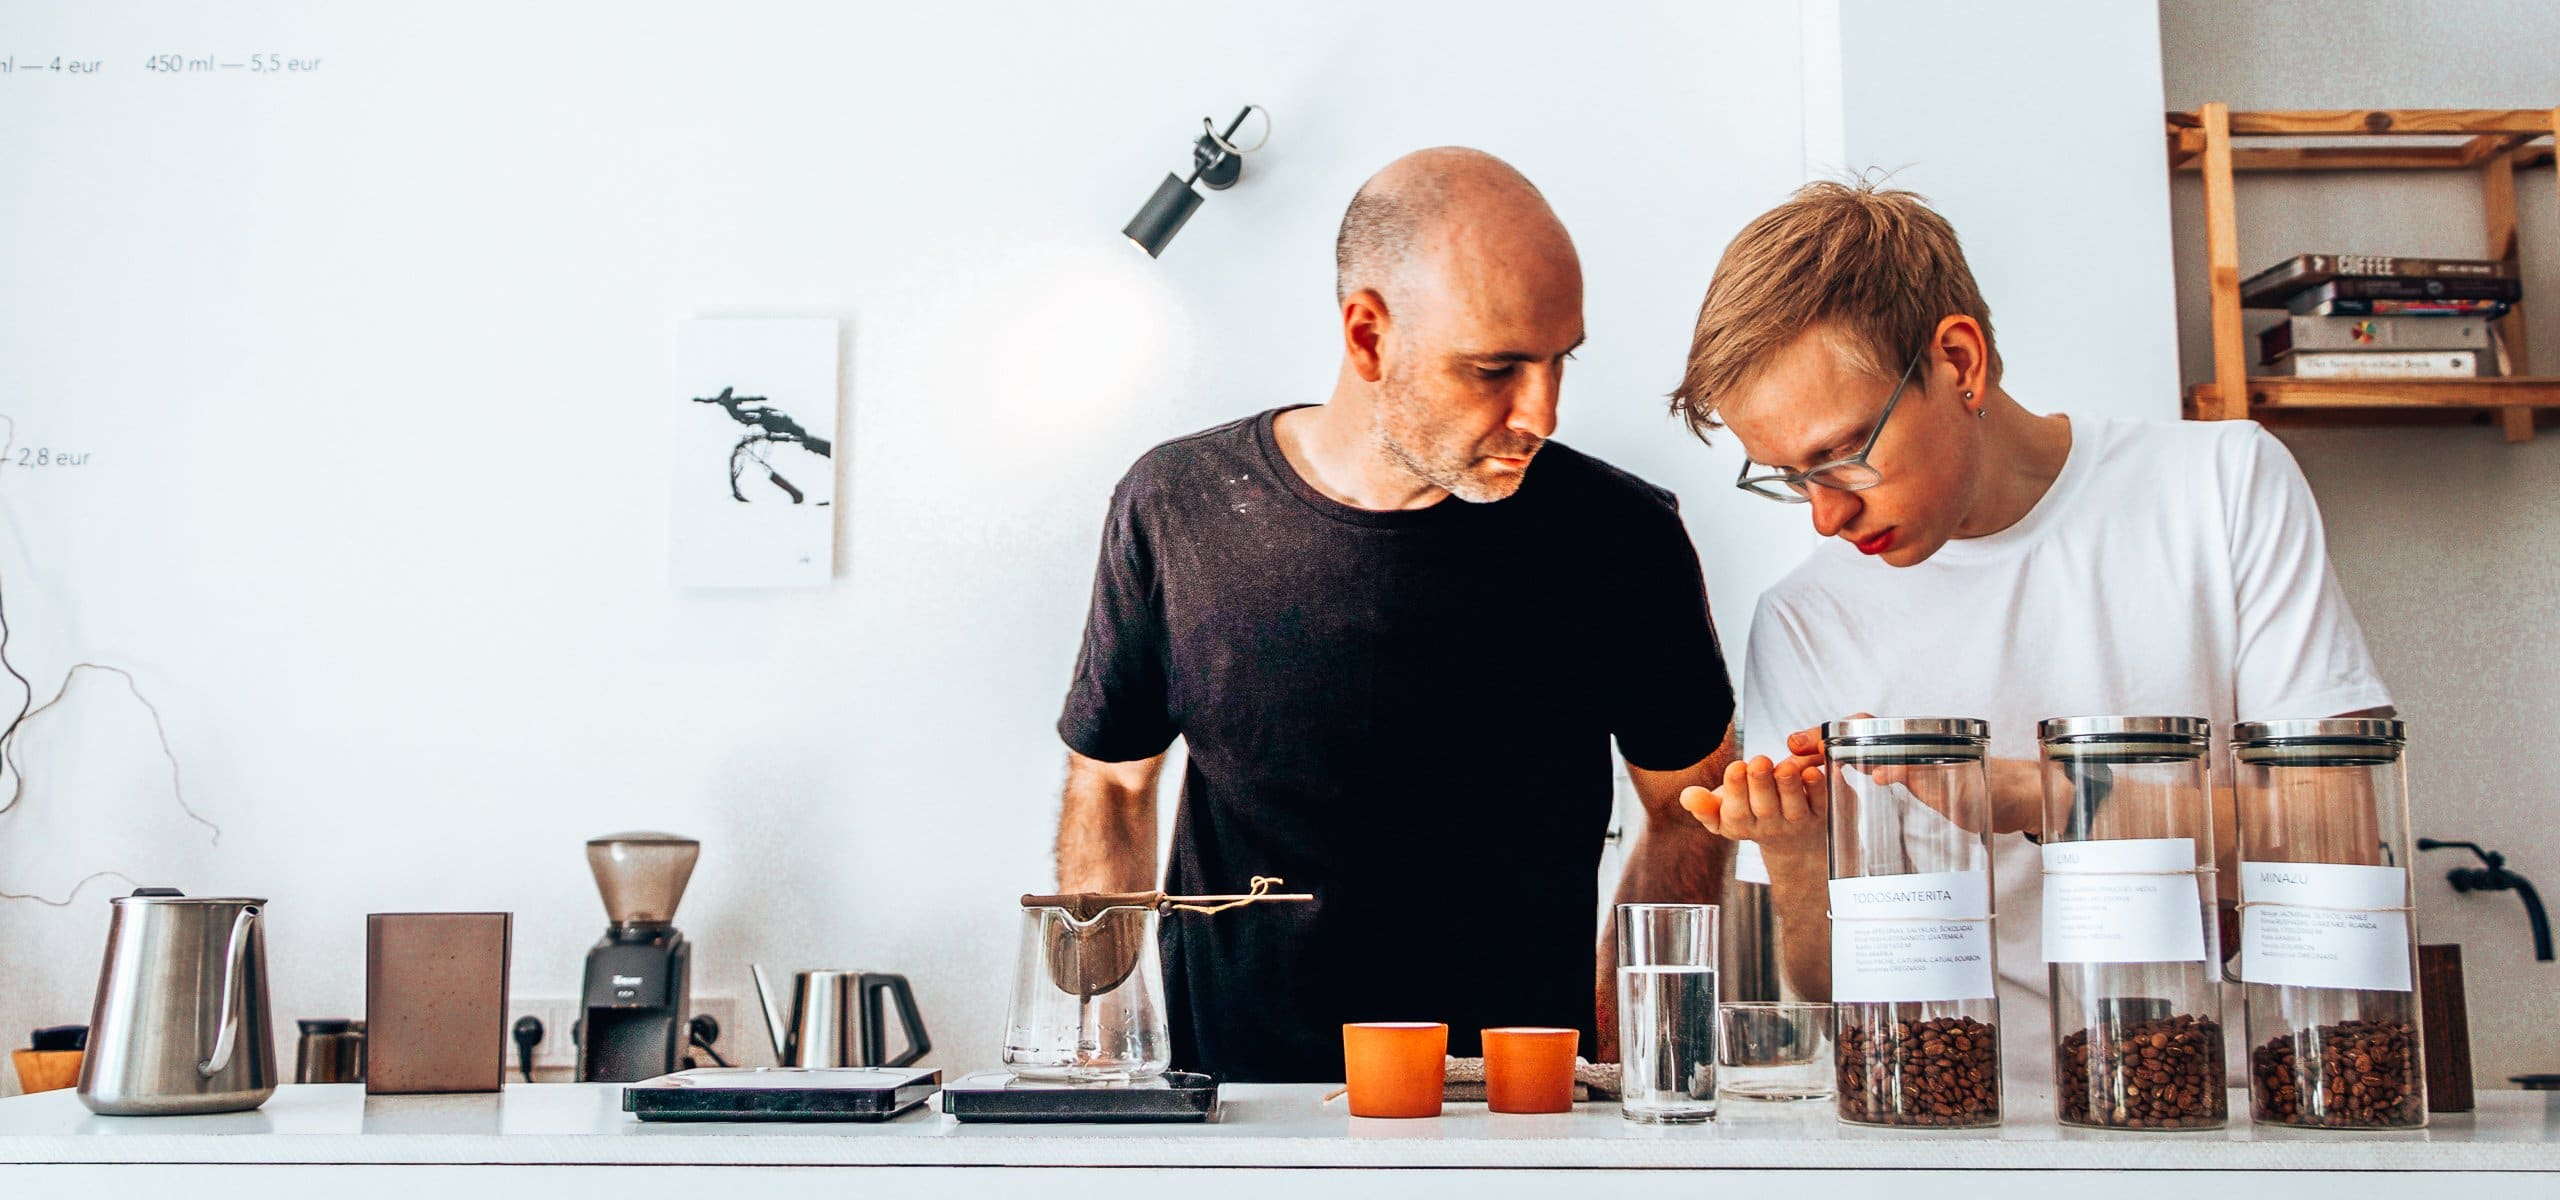 Baristas examine coffee beans at the coffee counter of Crooked Nose & Coffee Stories in Vilnius, Lithuania